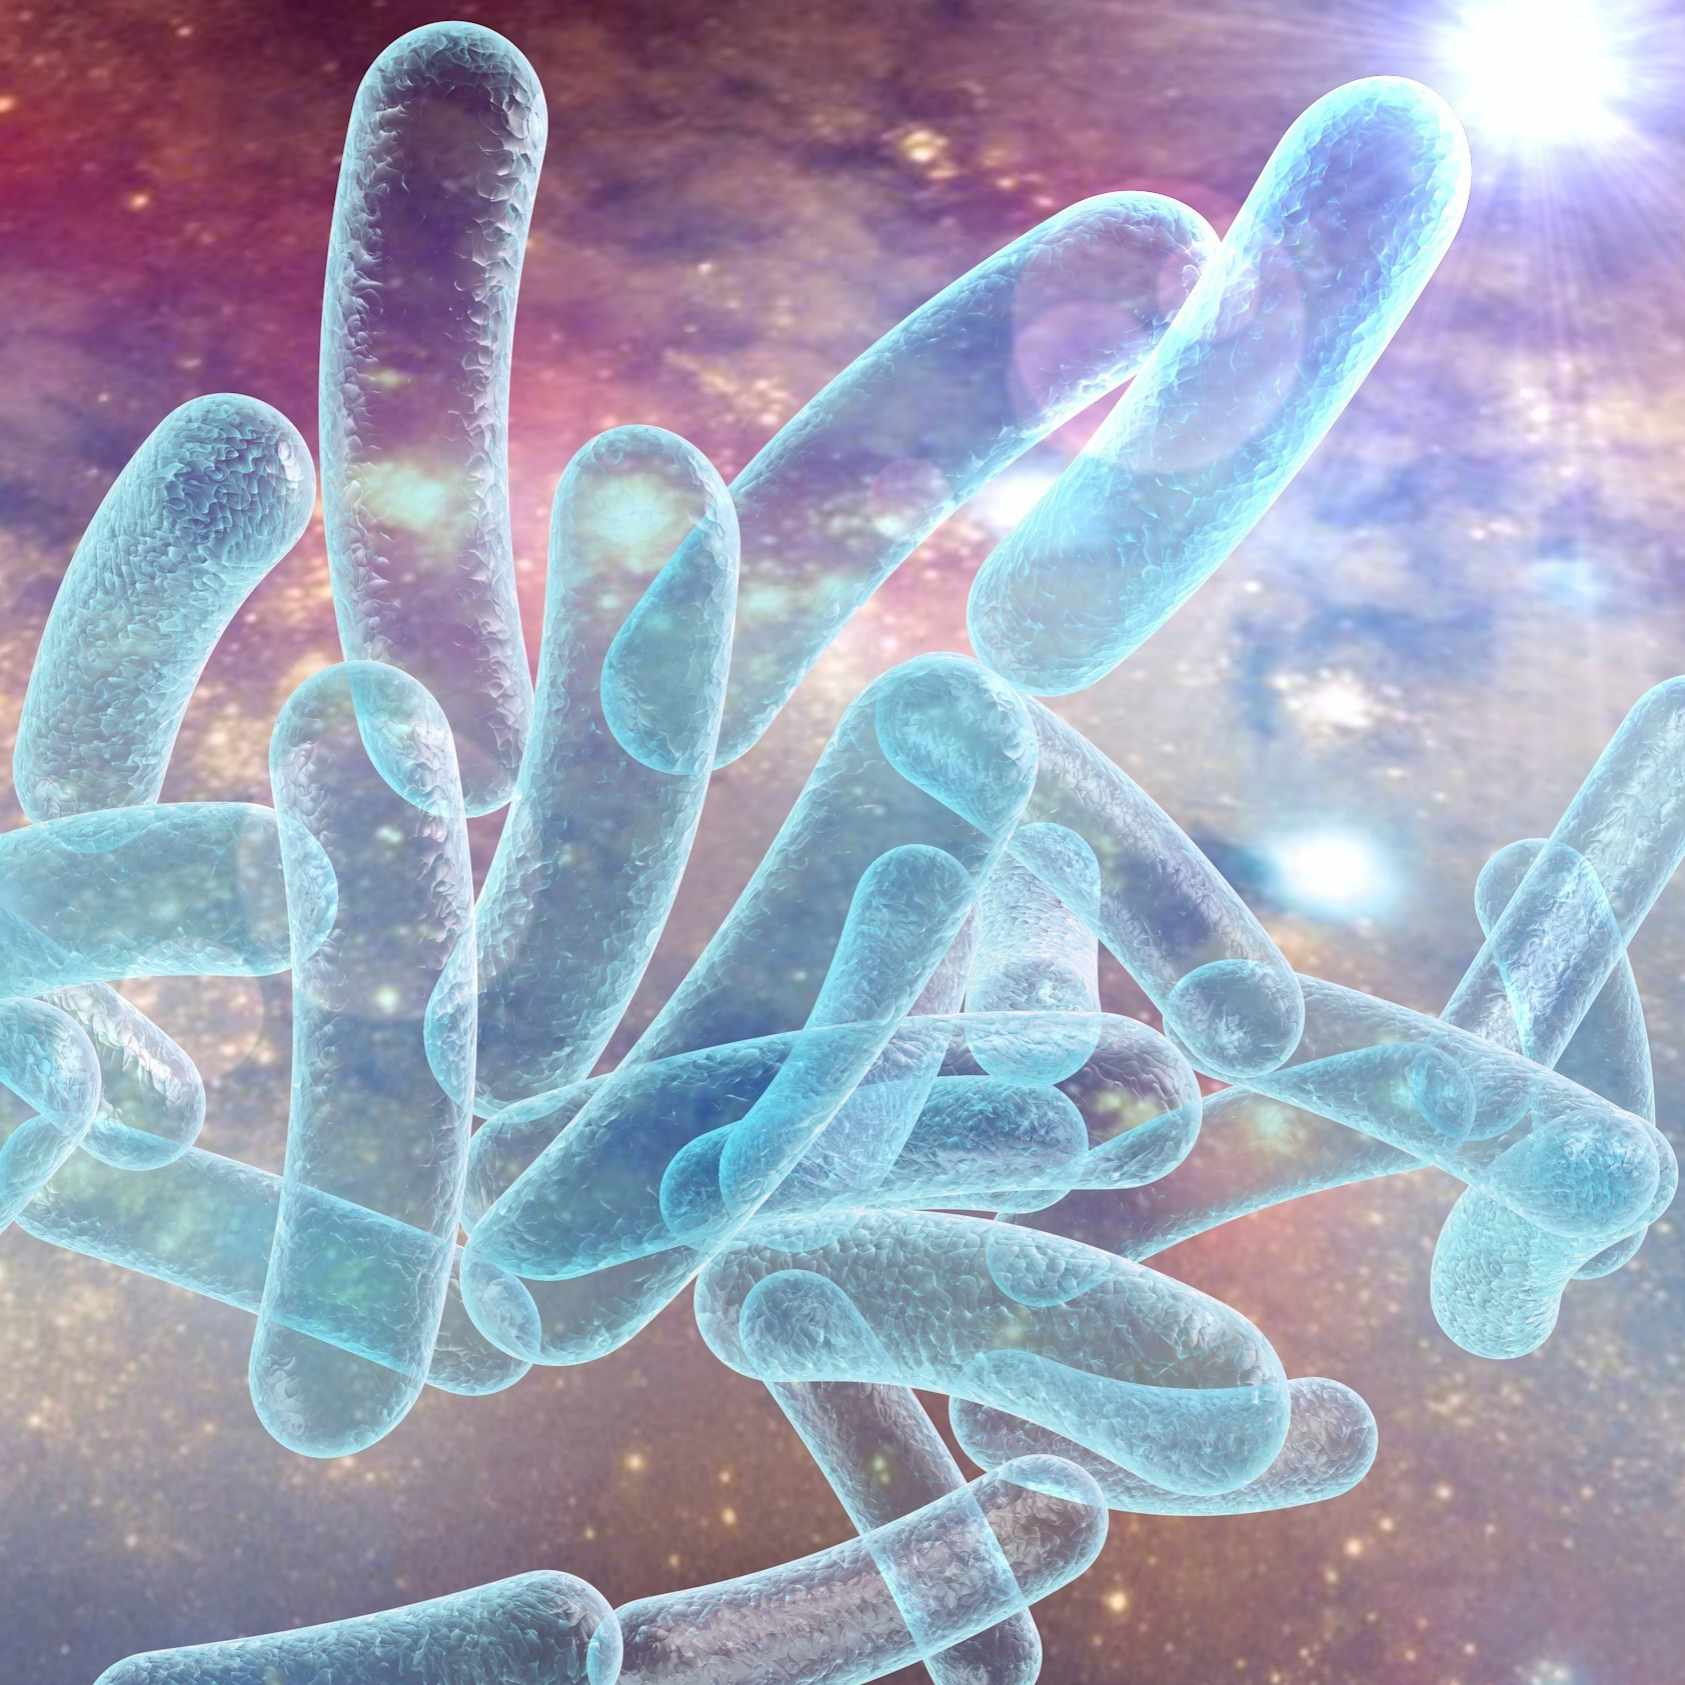 Bacterium Legionella pneumophila on surrealistic space background